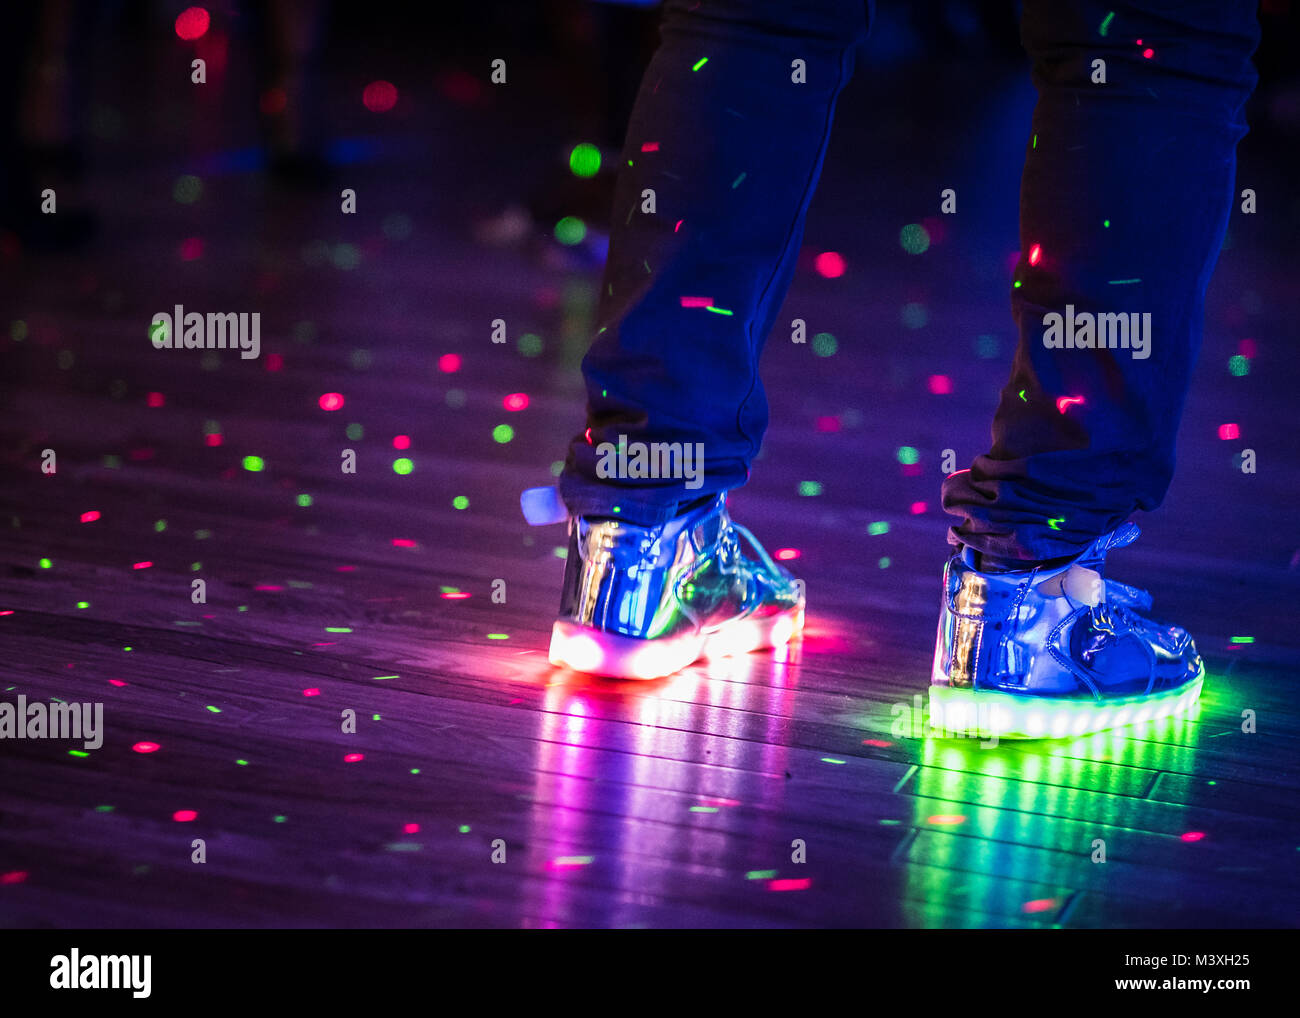 Flashing multi-coloured changing shoes in a night club. - Stock Image